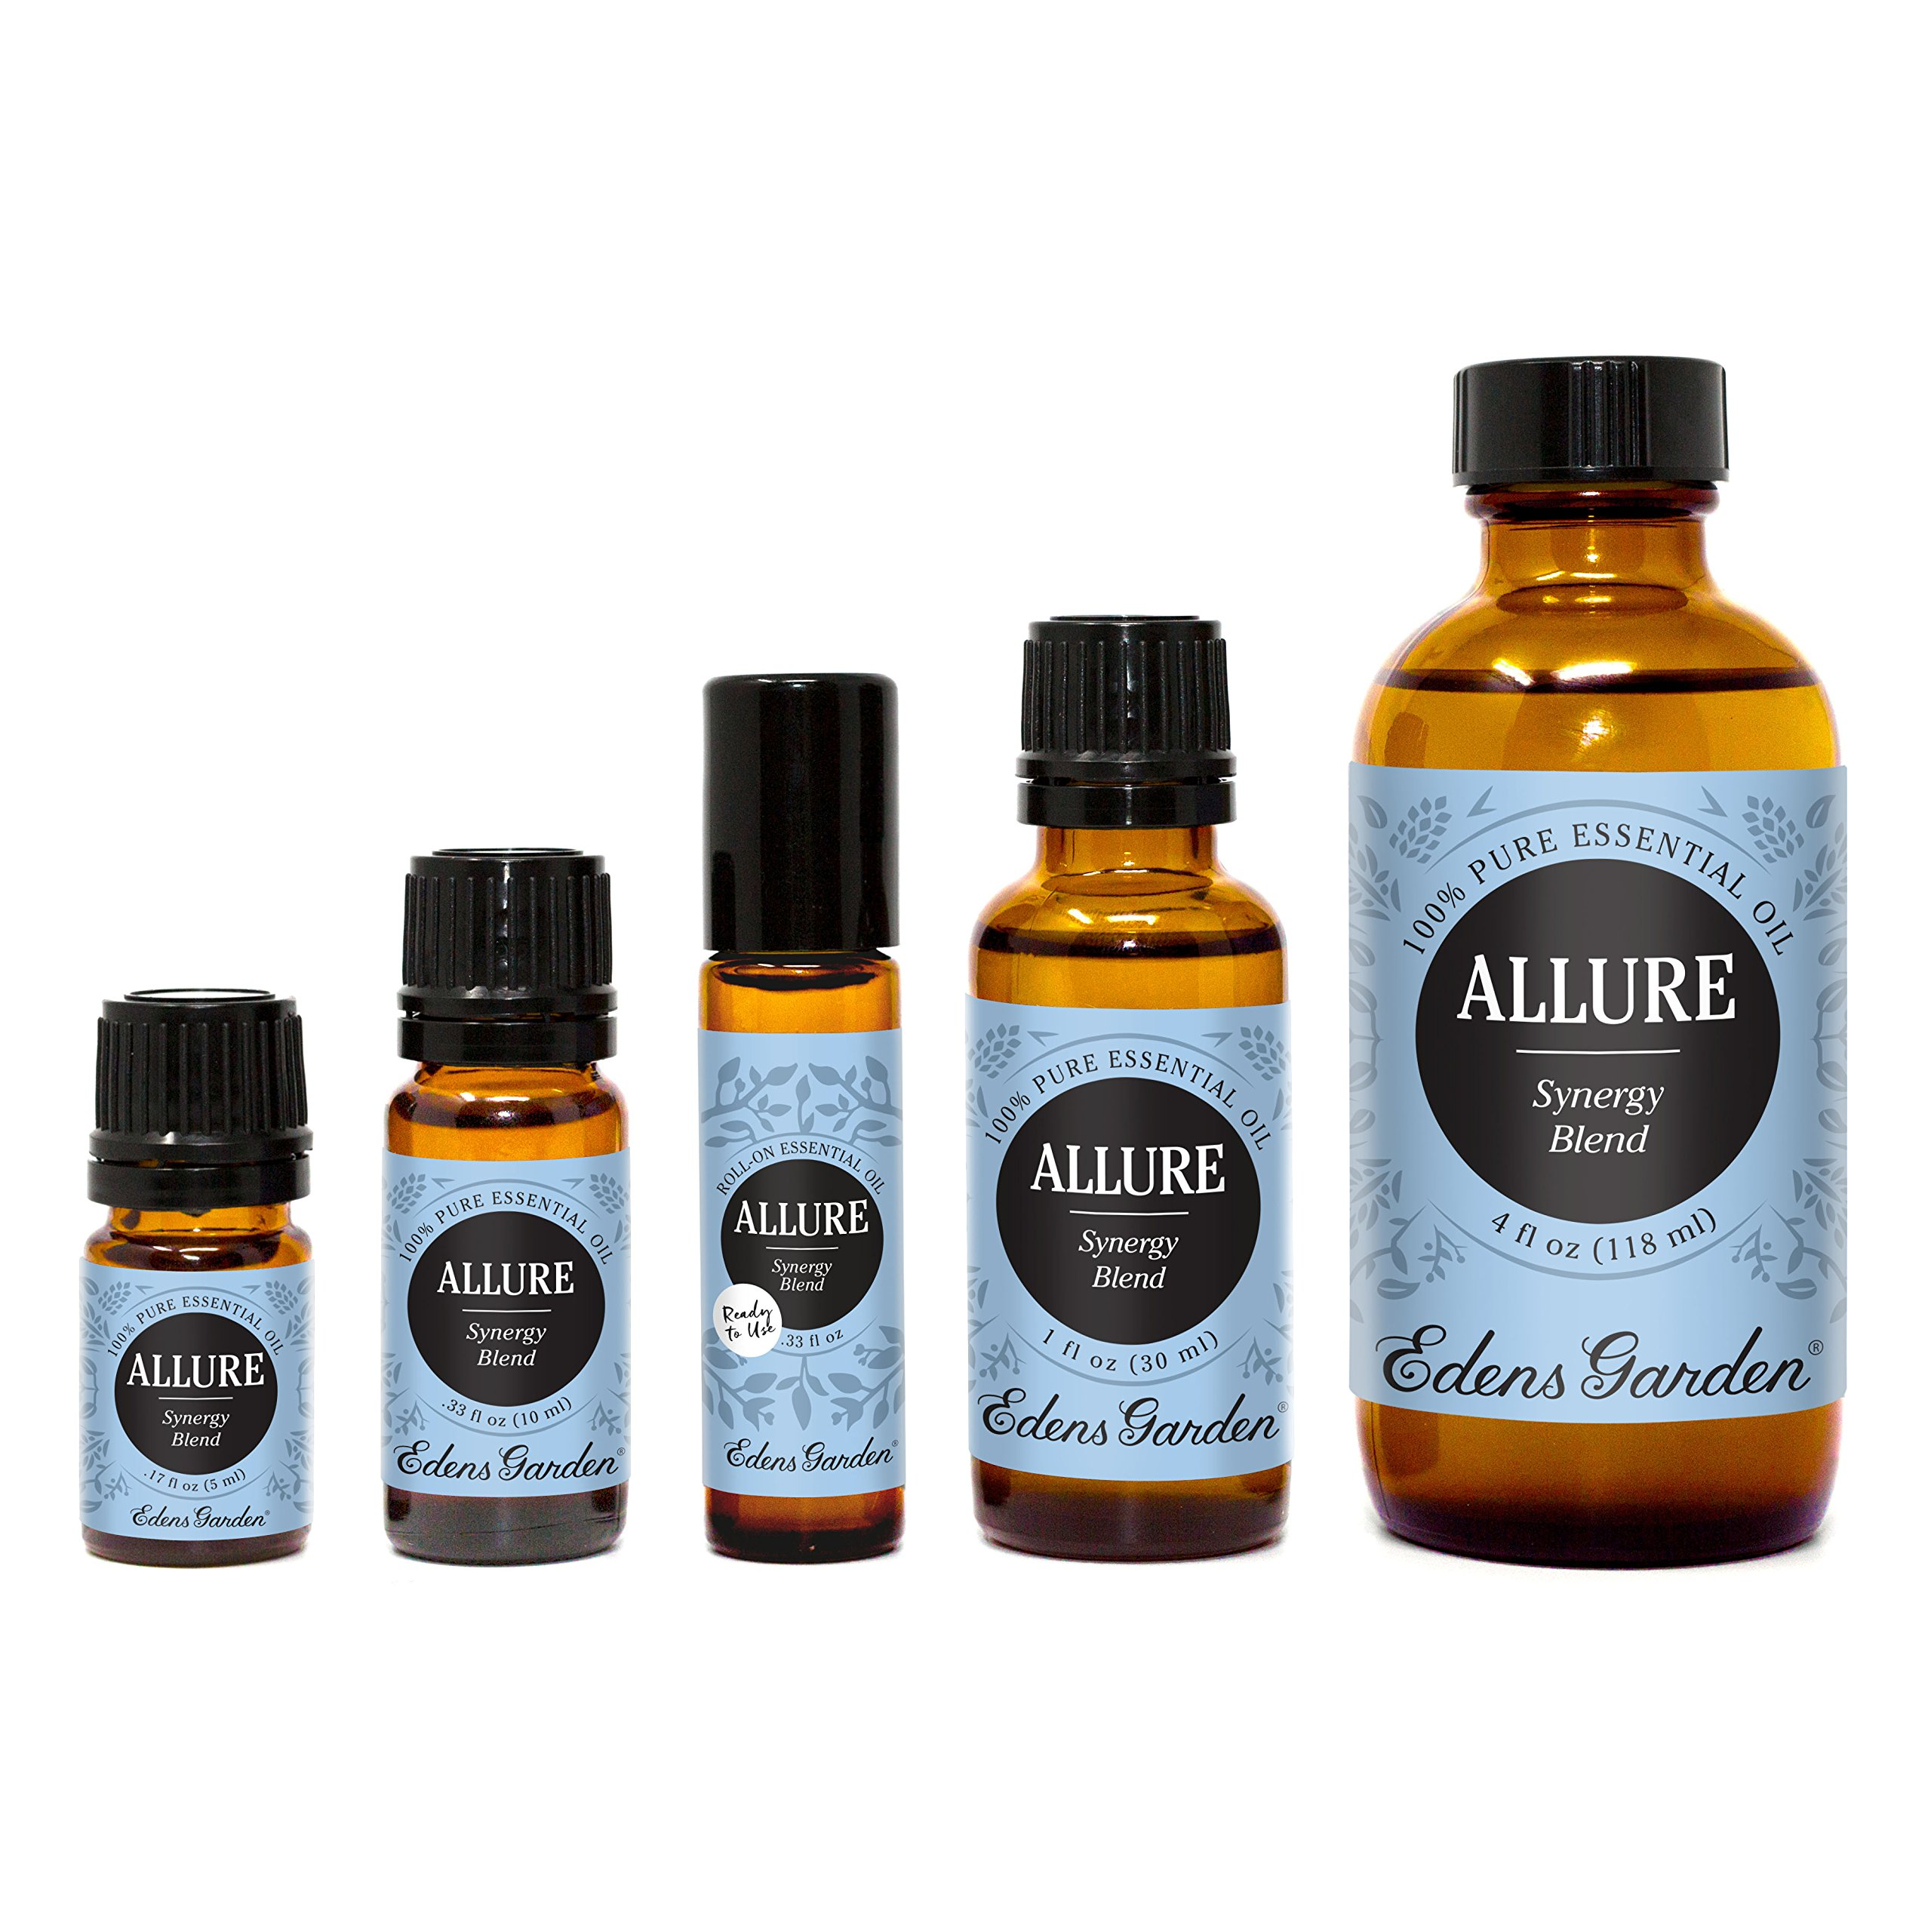 Allure Synergy Blend Essential Oil by Edens Garden- 10 ml (Comparable to Whisper by DoTerra)